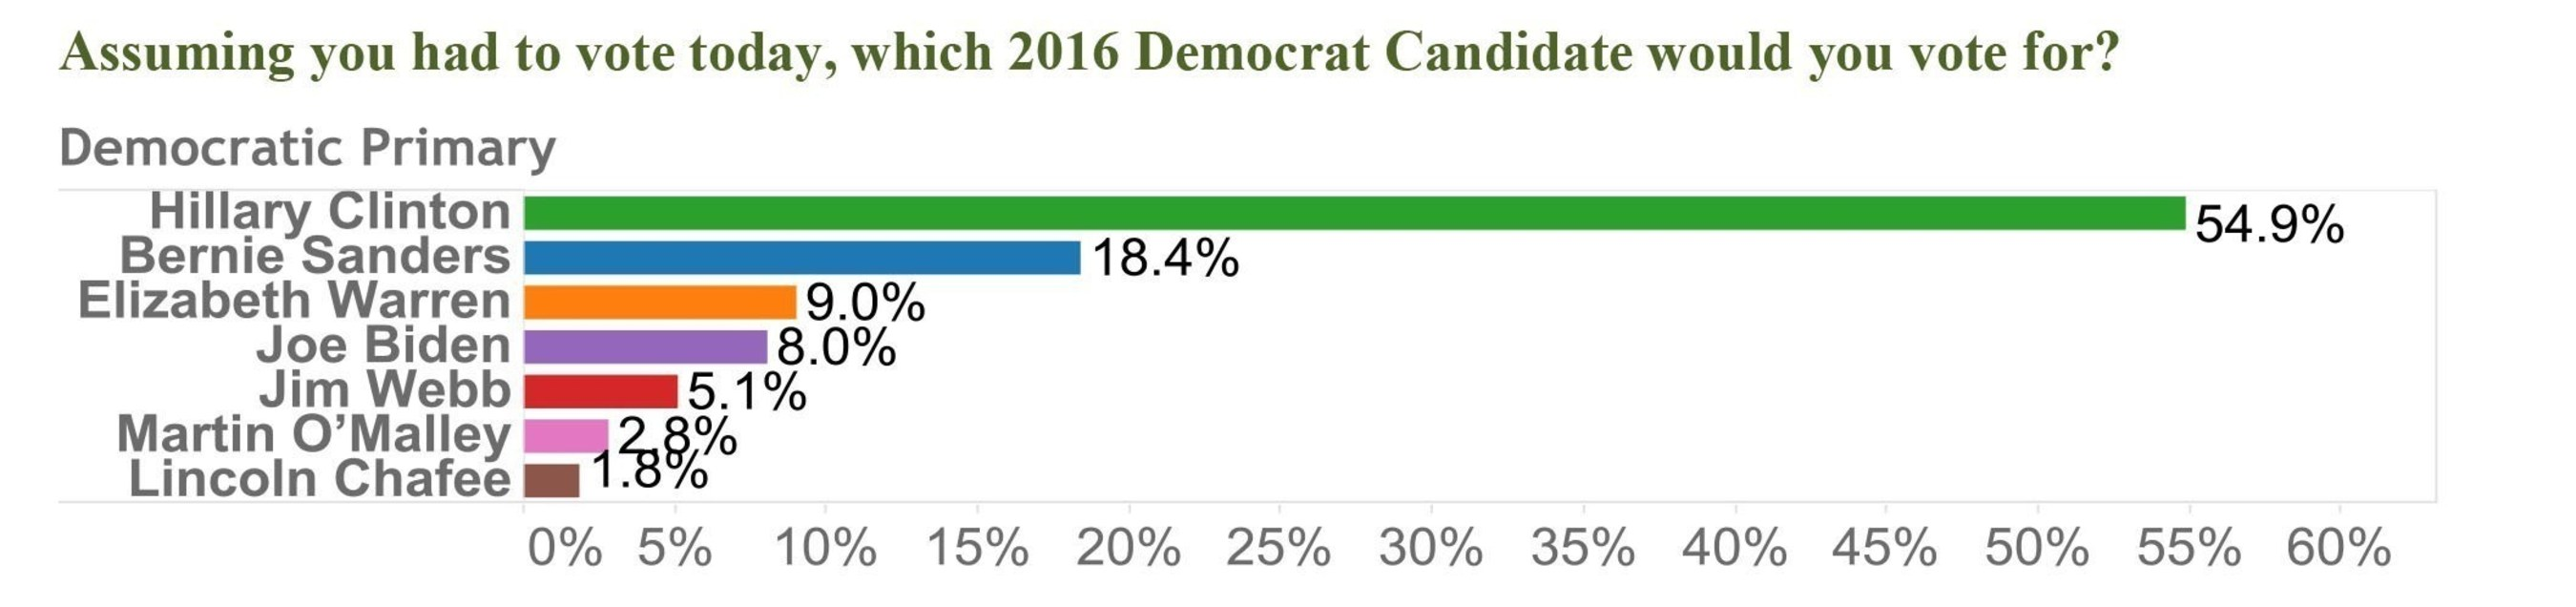 Assuming you had to vote today, which 2016 Democrat Candidate would you vote for?